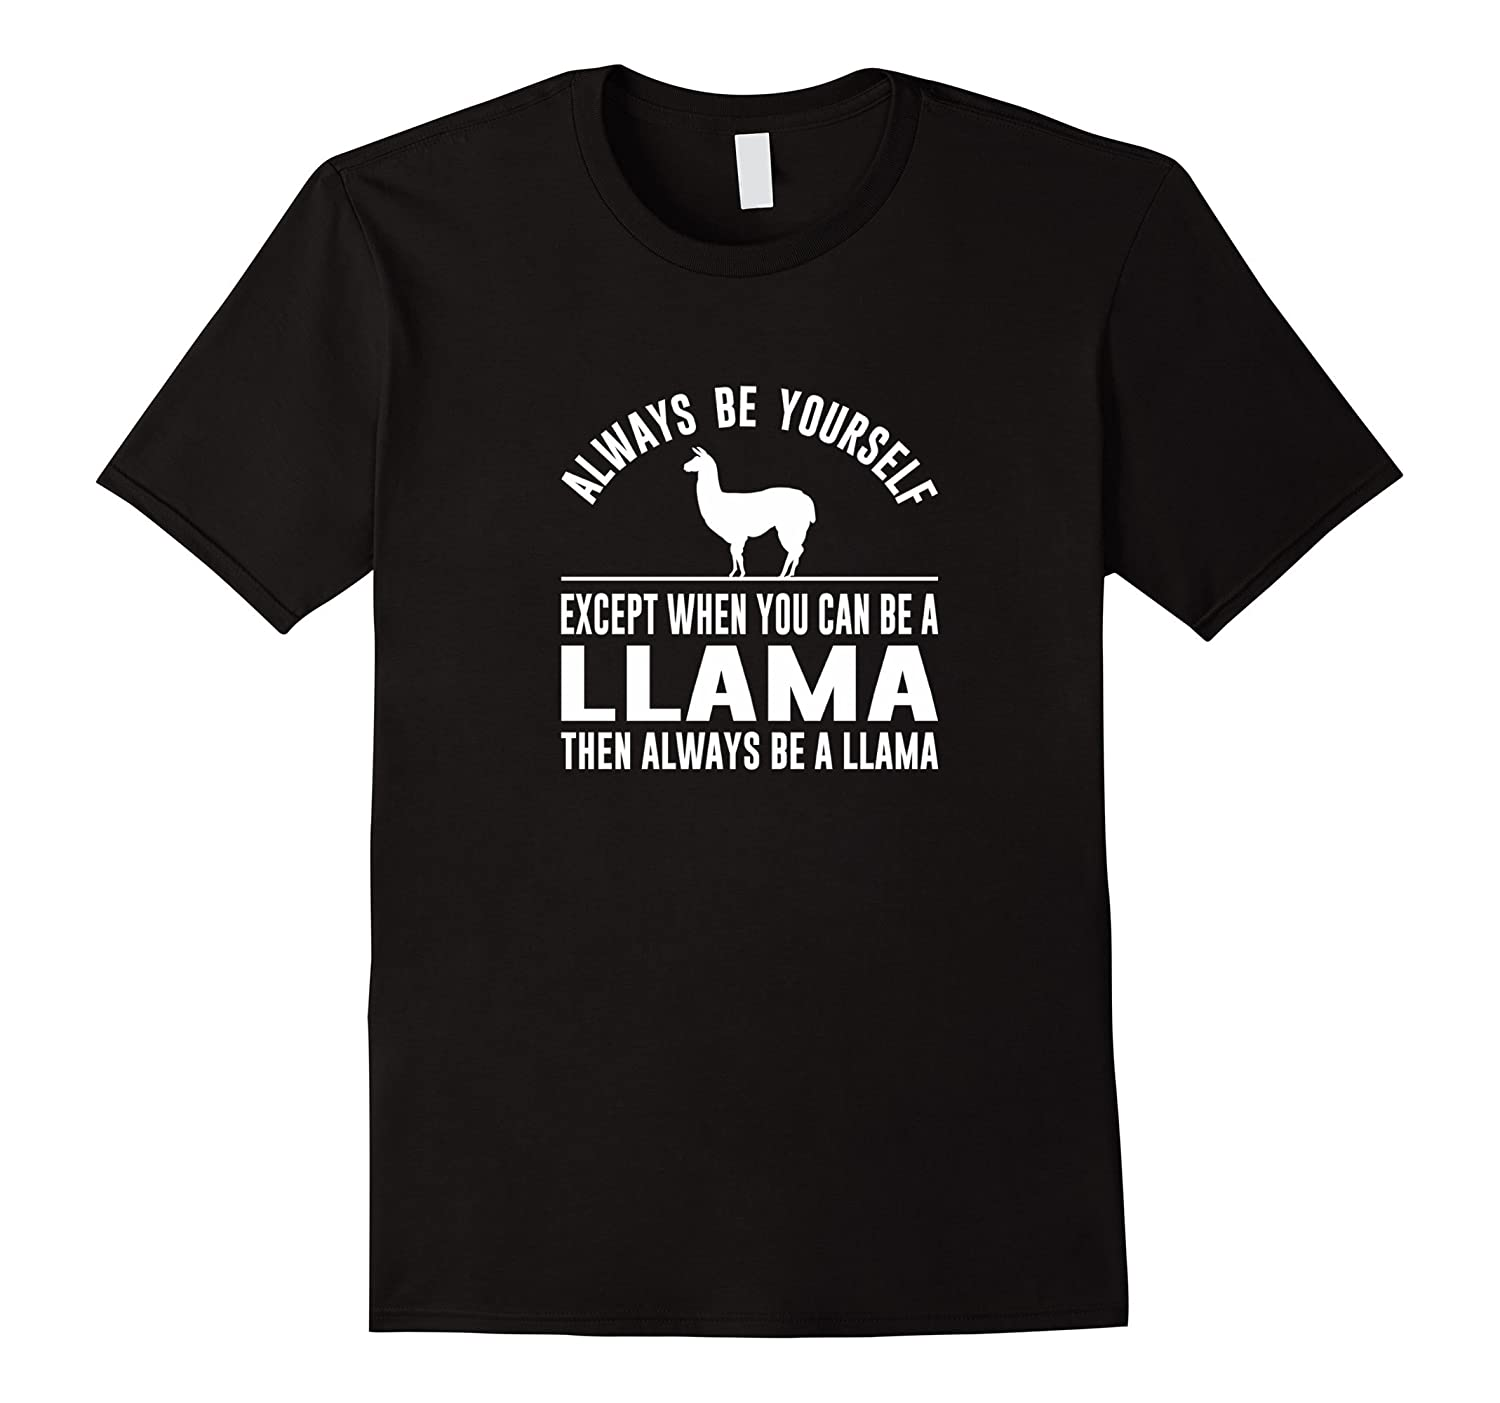 Always Be Yourself - Except When You Can Be a Llama Shirt-Art